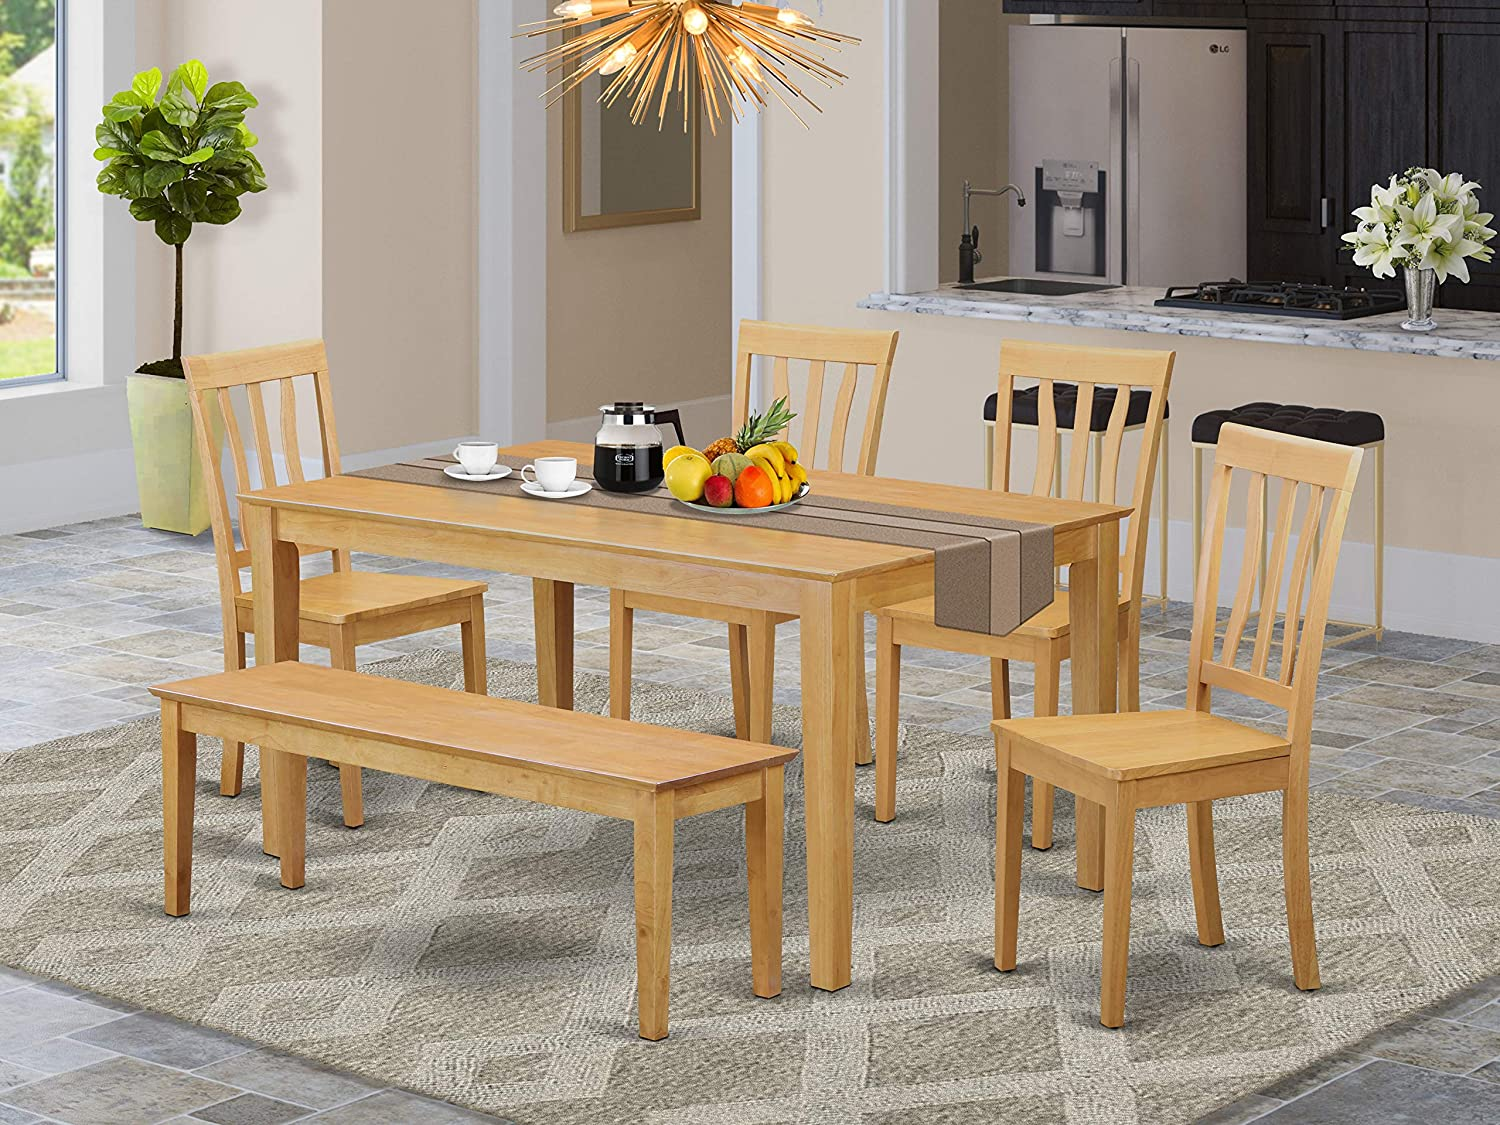 Amazon Com East West Furniture Kitchen Nook Table Set 6 Pc Wooden Dining Room Chairs Seat Oak Finish Rectangular Kitchen Table And Bench Furniture Decor